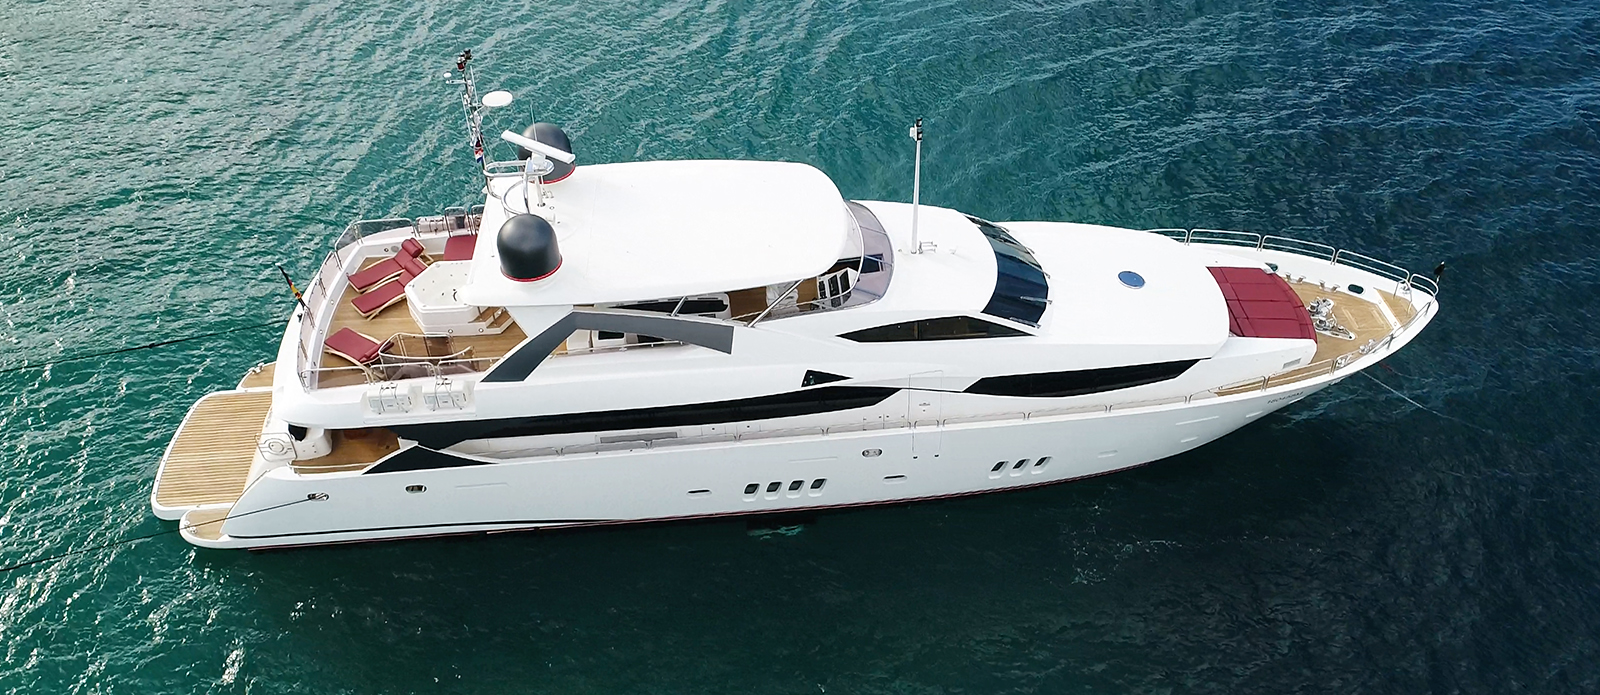 Sunseeker 34M White Pearl at Anchor